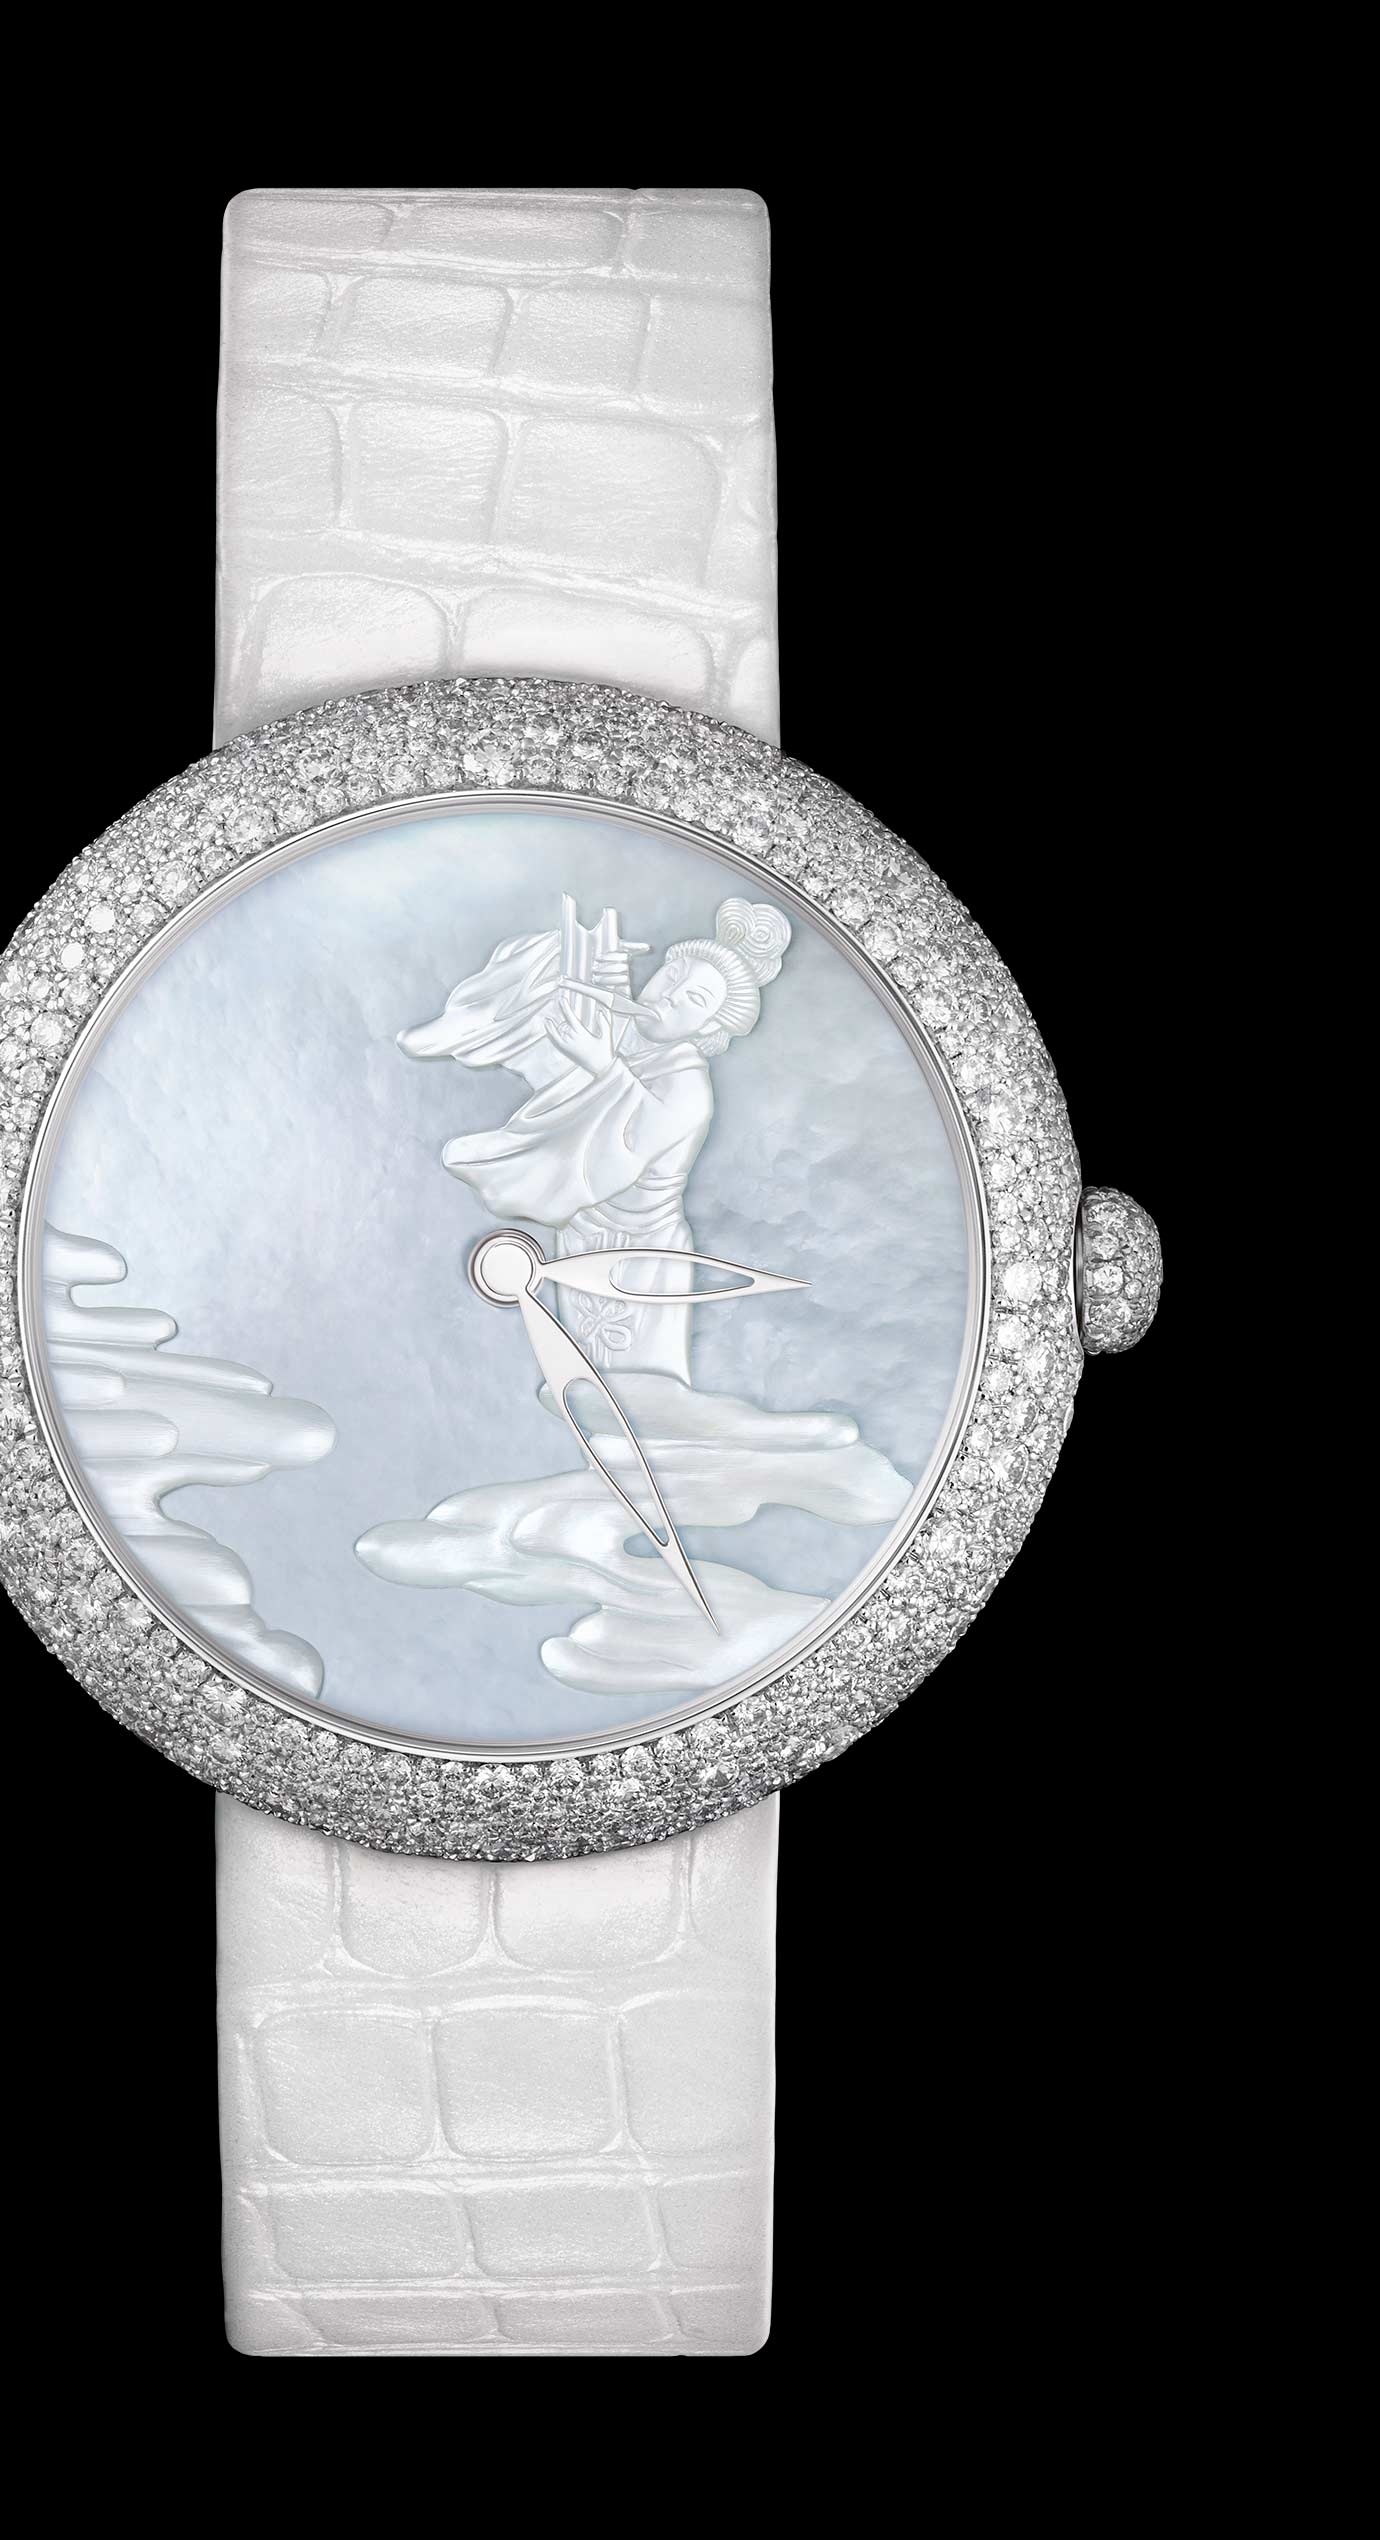 "Mademoiselle Privé Coromandel ""Douce Mélodie"" watch in white gold with snow set diamonds. Miniatures produced in Grand Feu enamel according to the Geneva technique and carved mother-of-pearl. - Enlarged view"